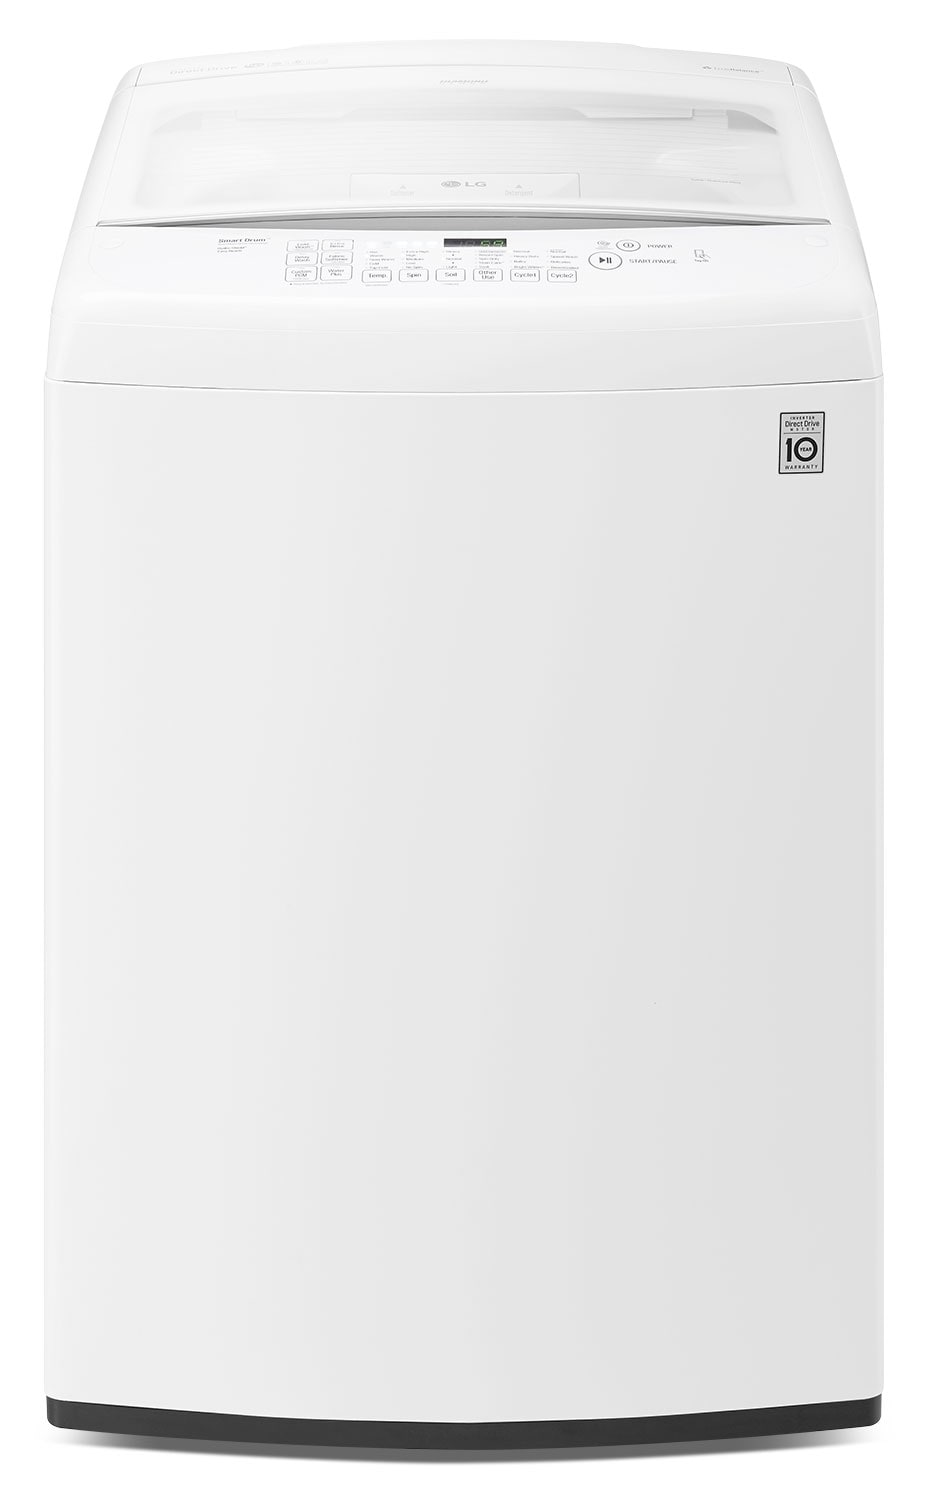 LG 5.2 Cu. Ft. High-Efficiency Top-Load Washer with Front Controls – White